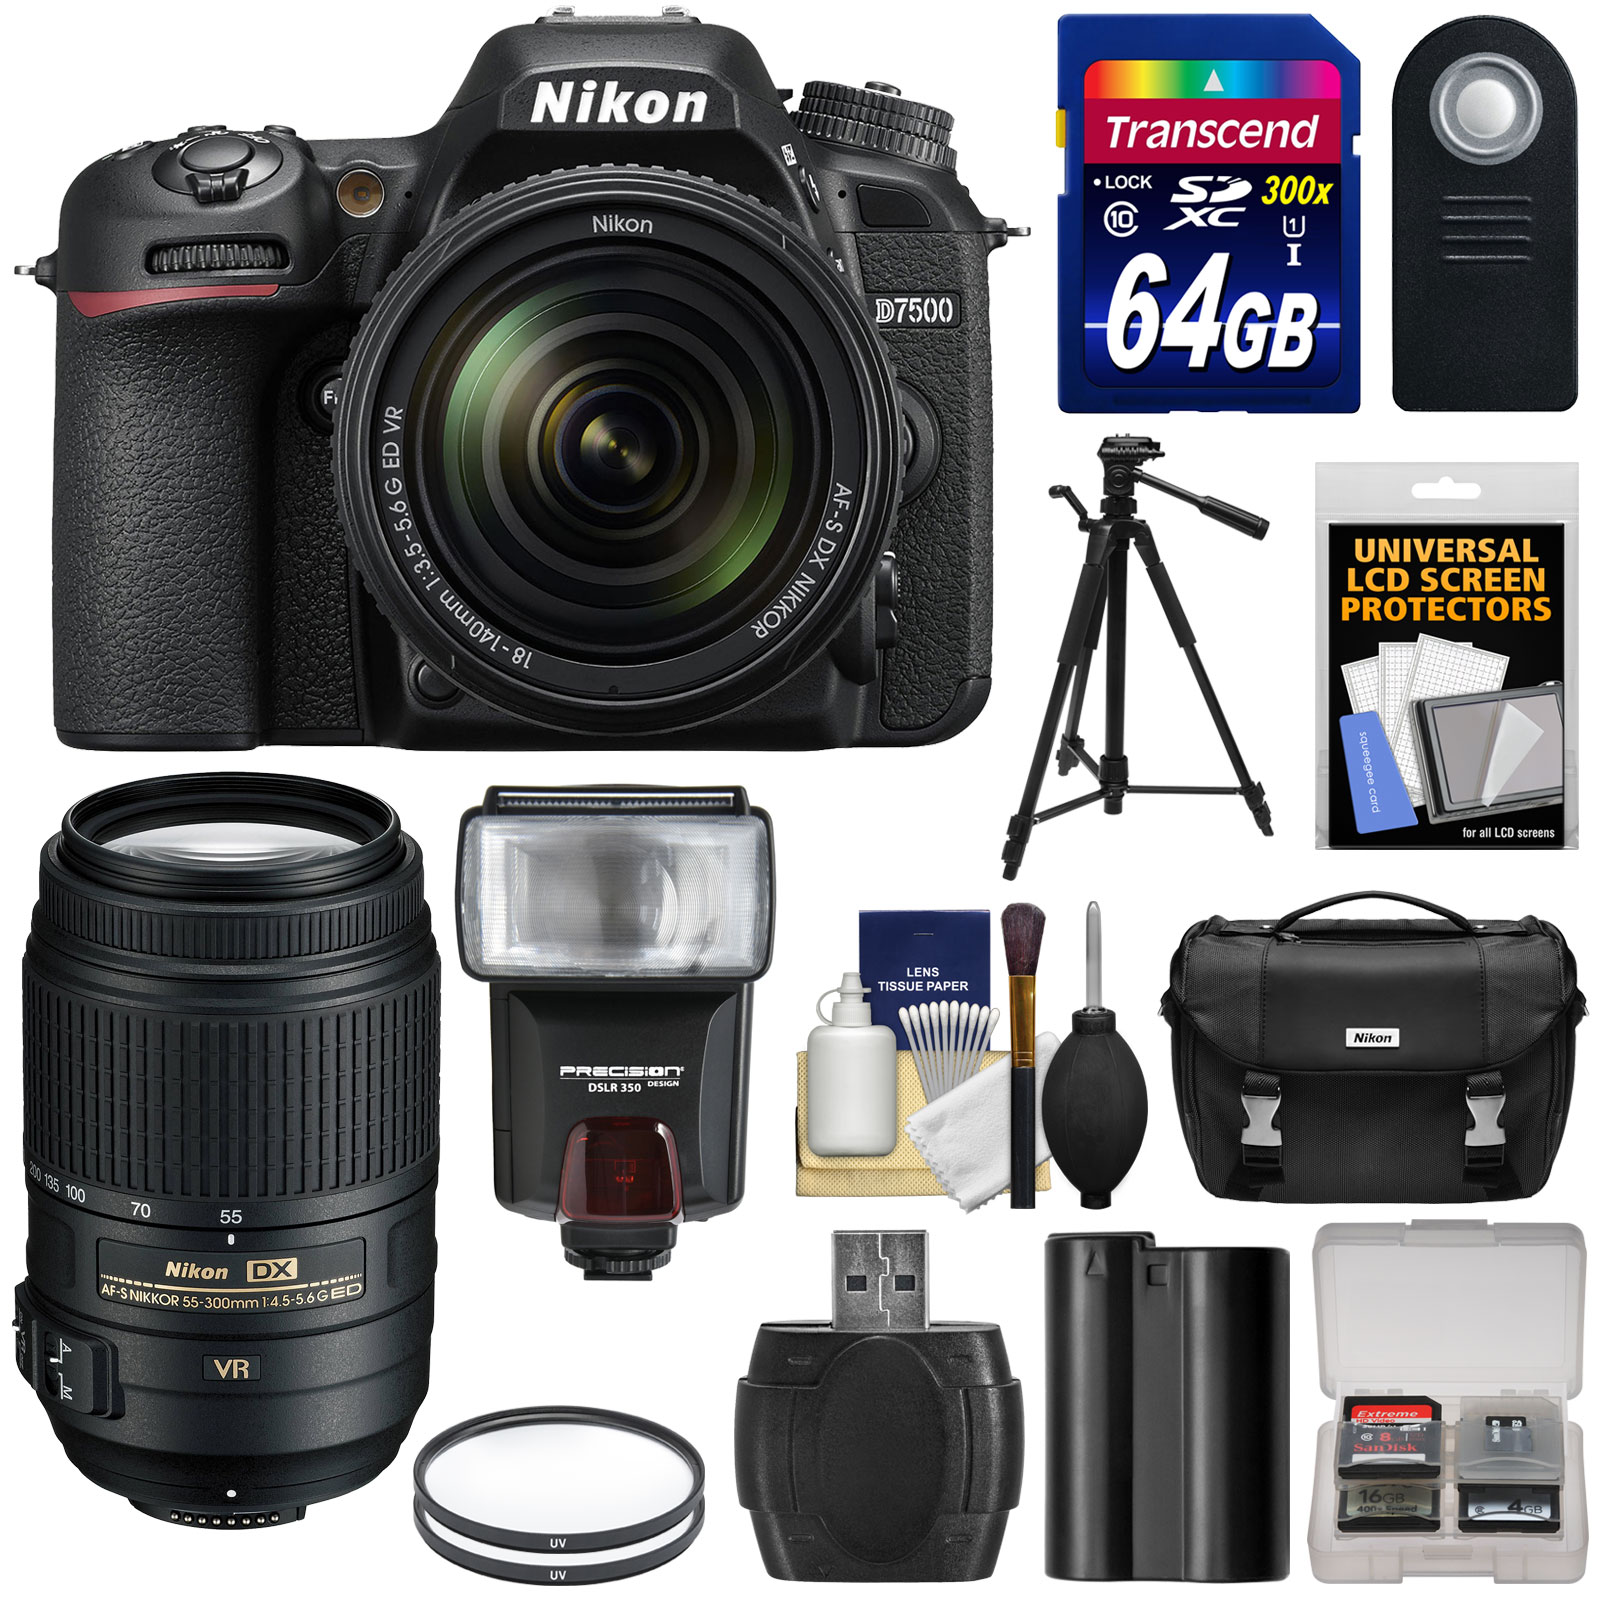 Nikon D7500 Wi-Fi 4K Digital SLR Camera with 18-140mm & 55-300mm VR DX Lens + 64GB Card + Battery + Case +... by Nikon